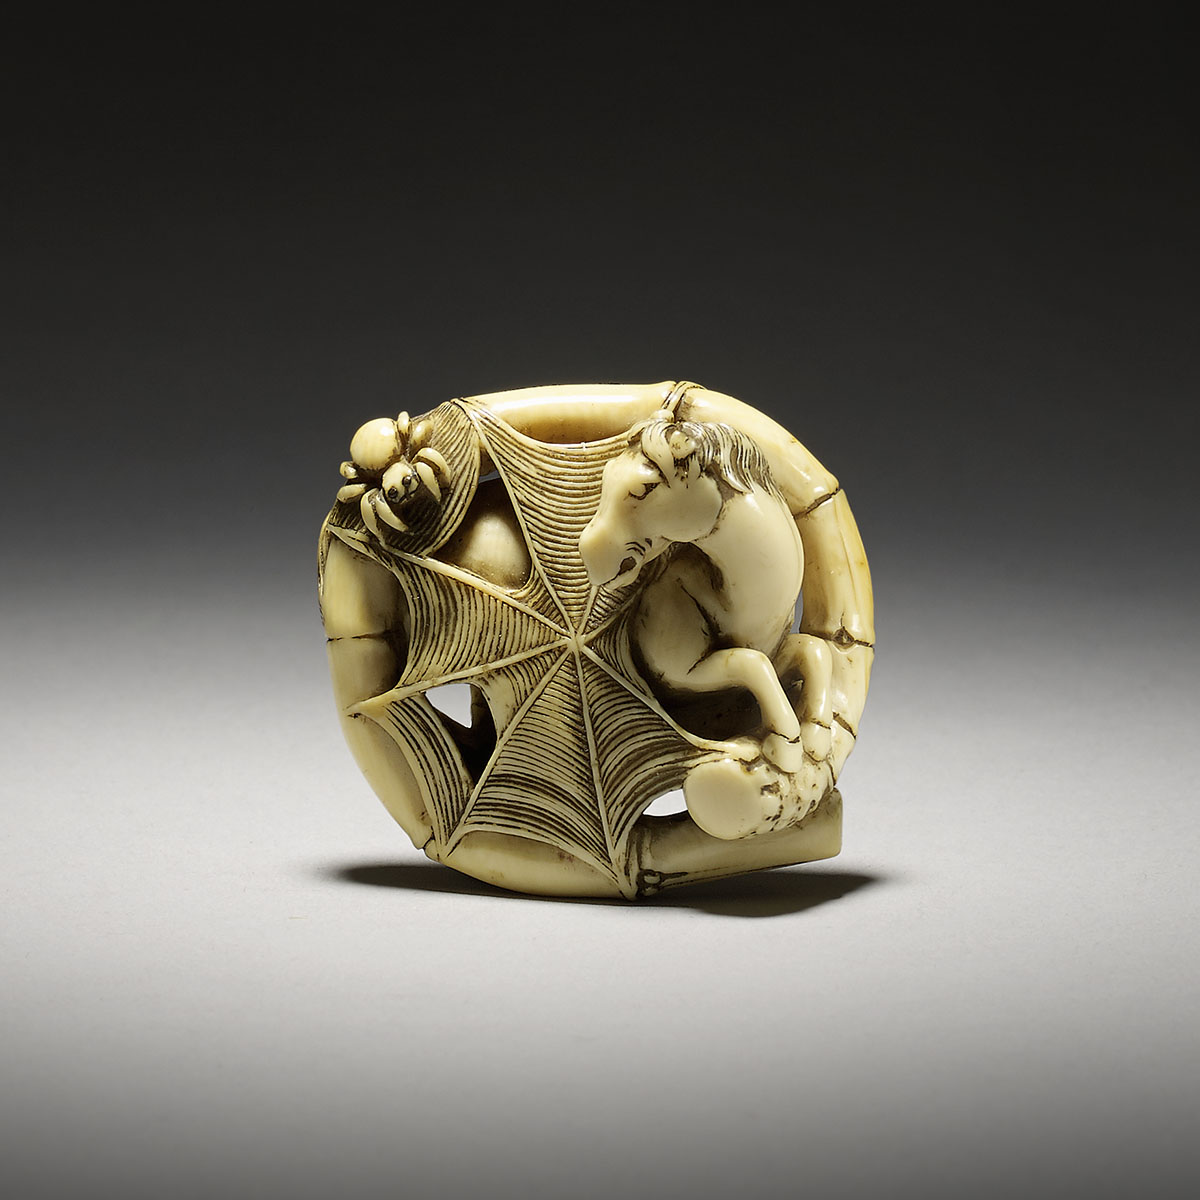 Ivory netsuke of a horse caught in a spider's web, MR3109_v1